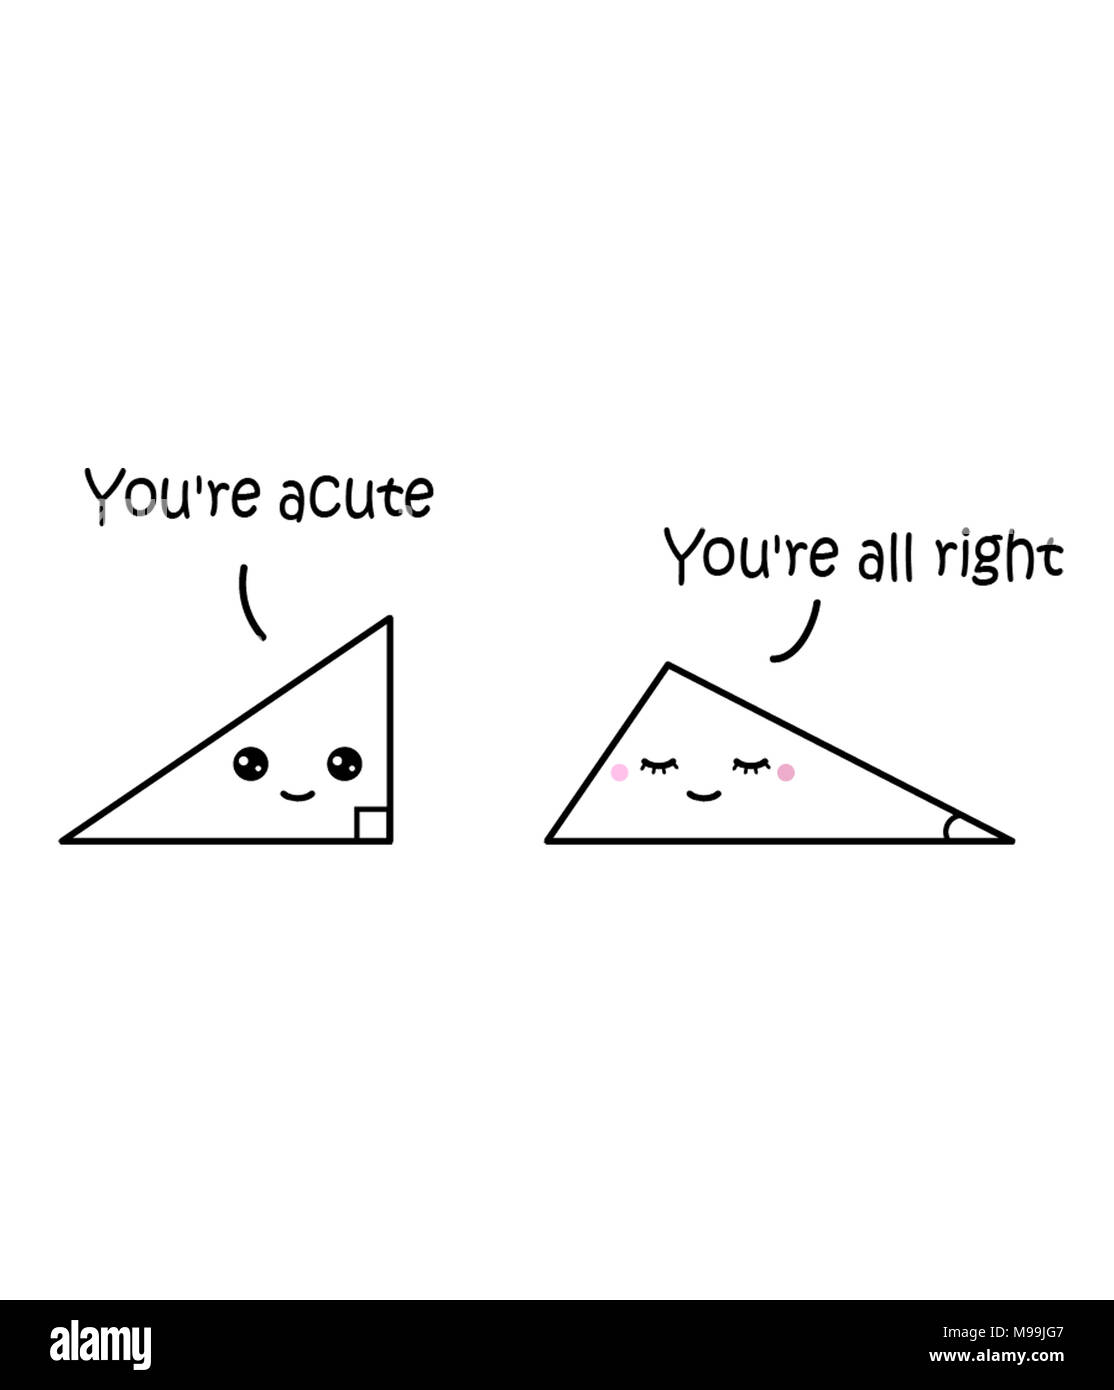 You're acute - You're all right - Stock Image